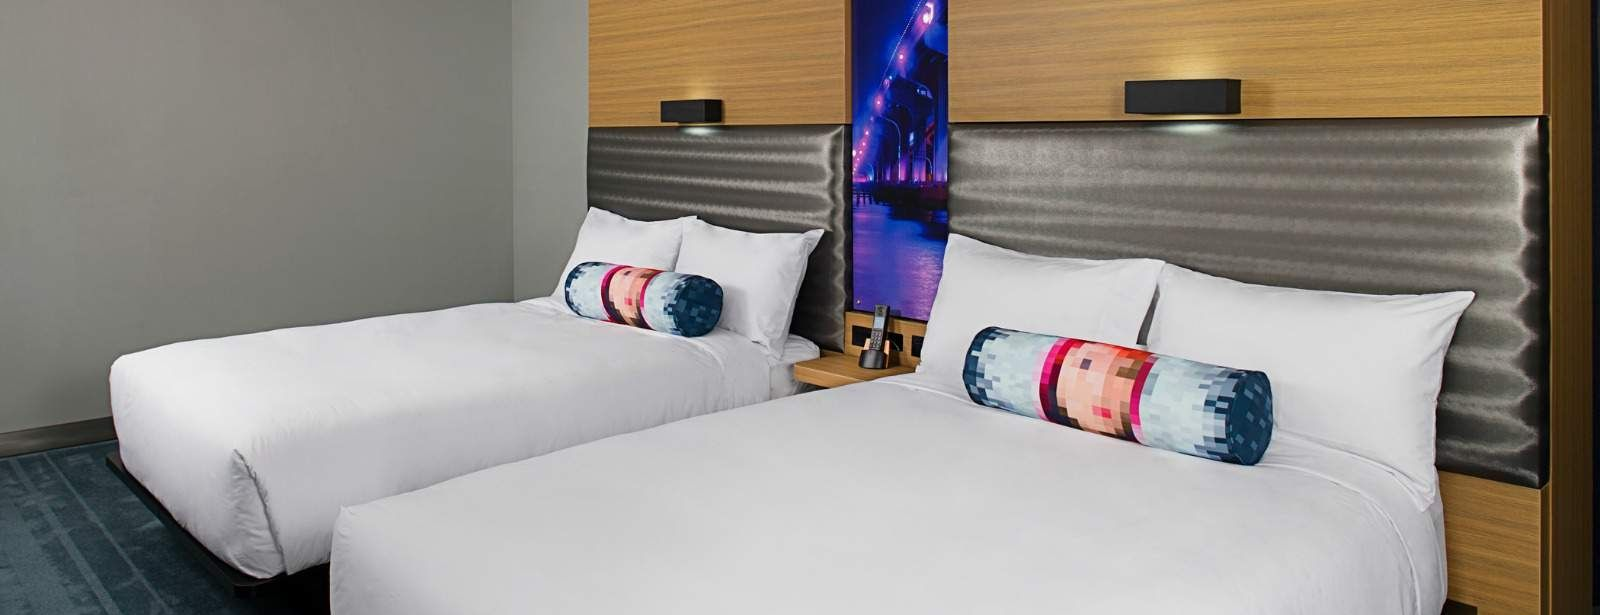 Brickell Accommodations - Aloft Suite